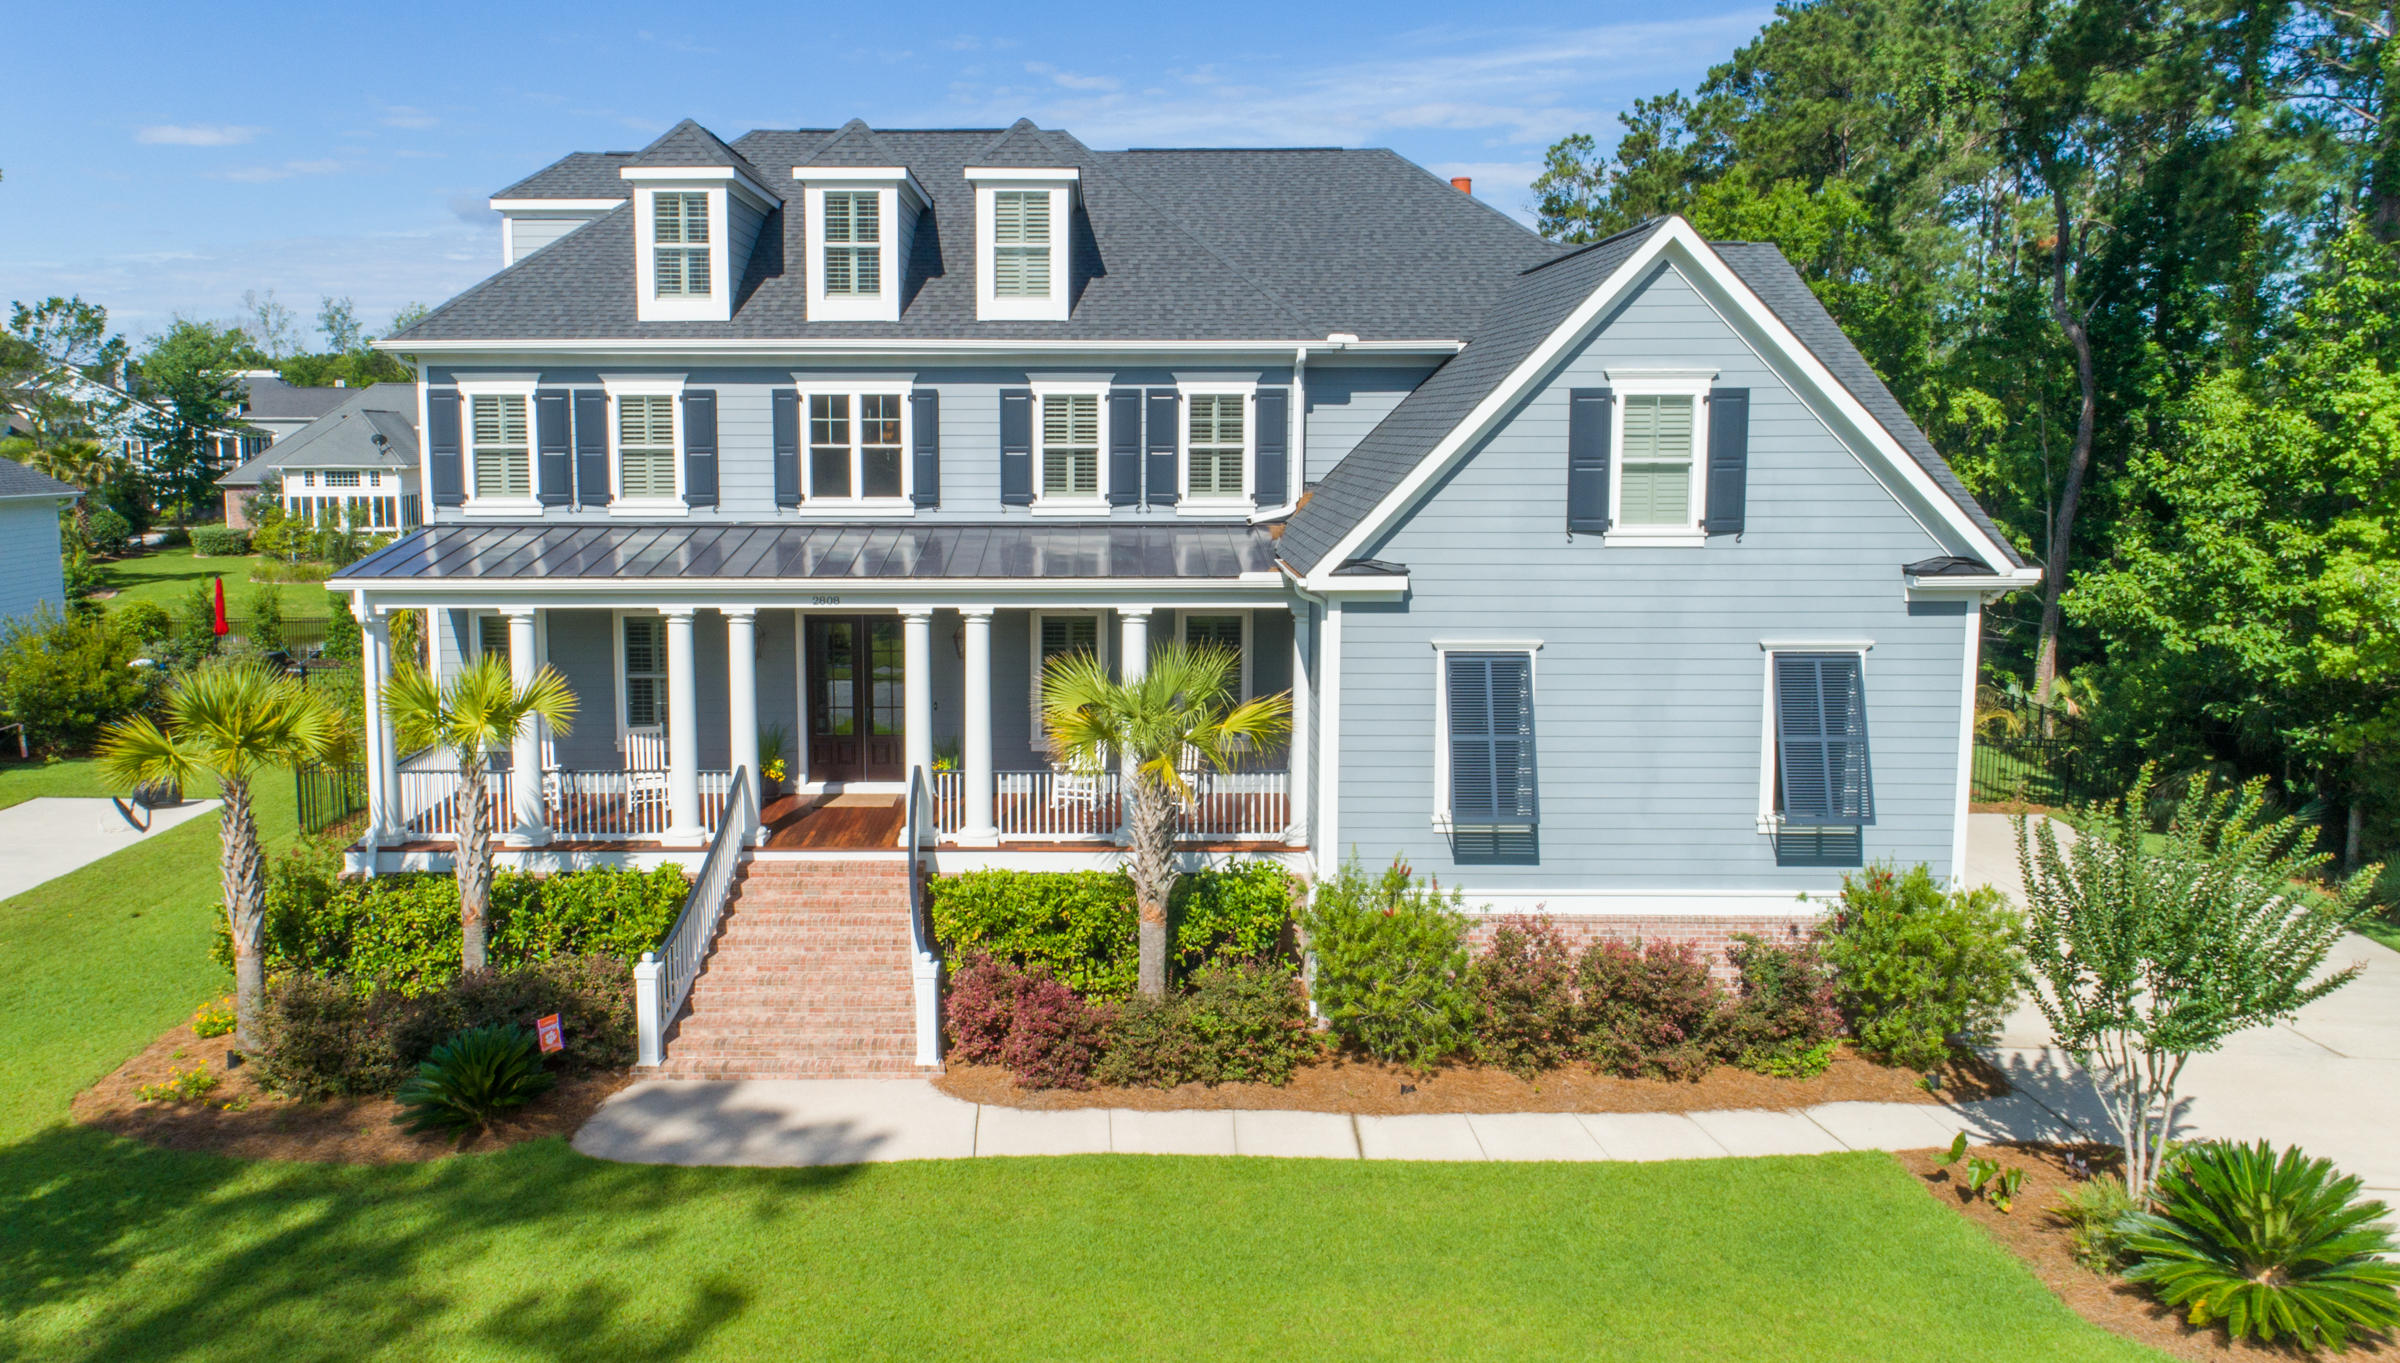 Photo of 2808 Stay Sail Way, Mt Pleasant, SC 29466